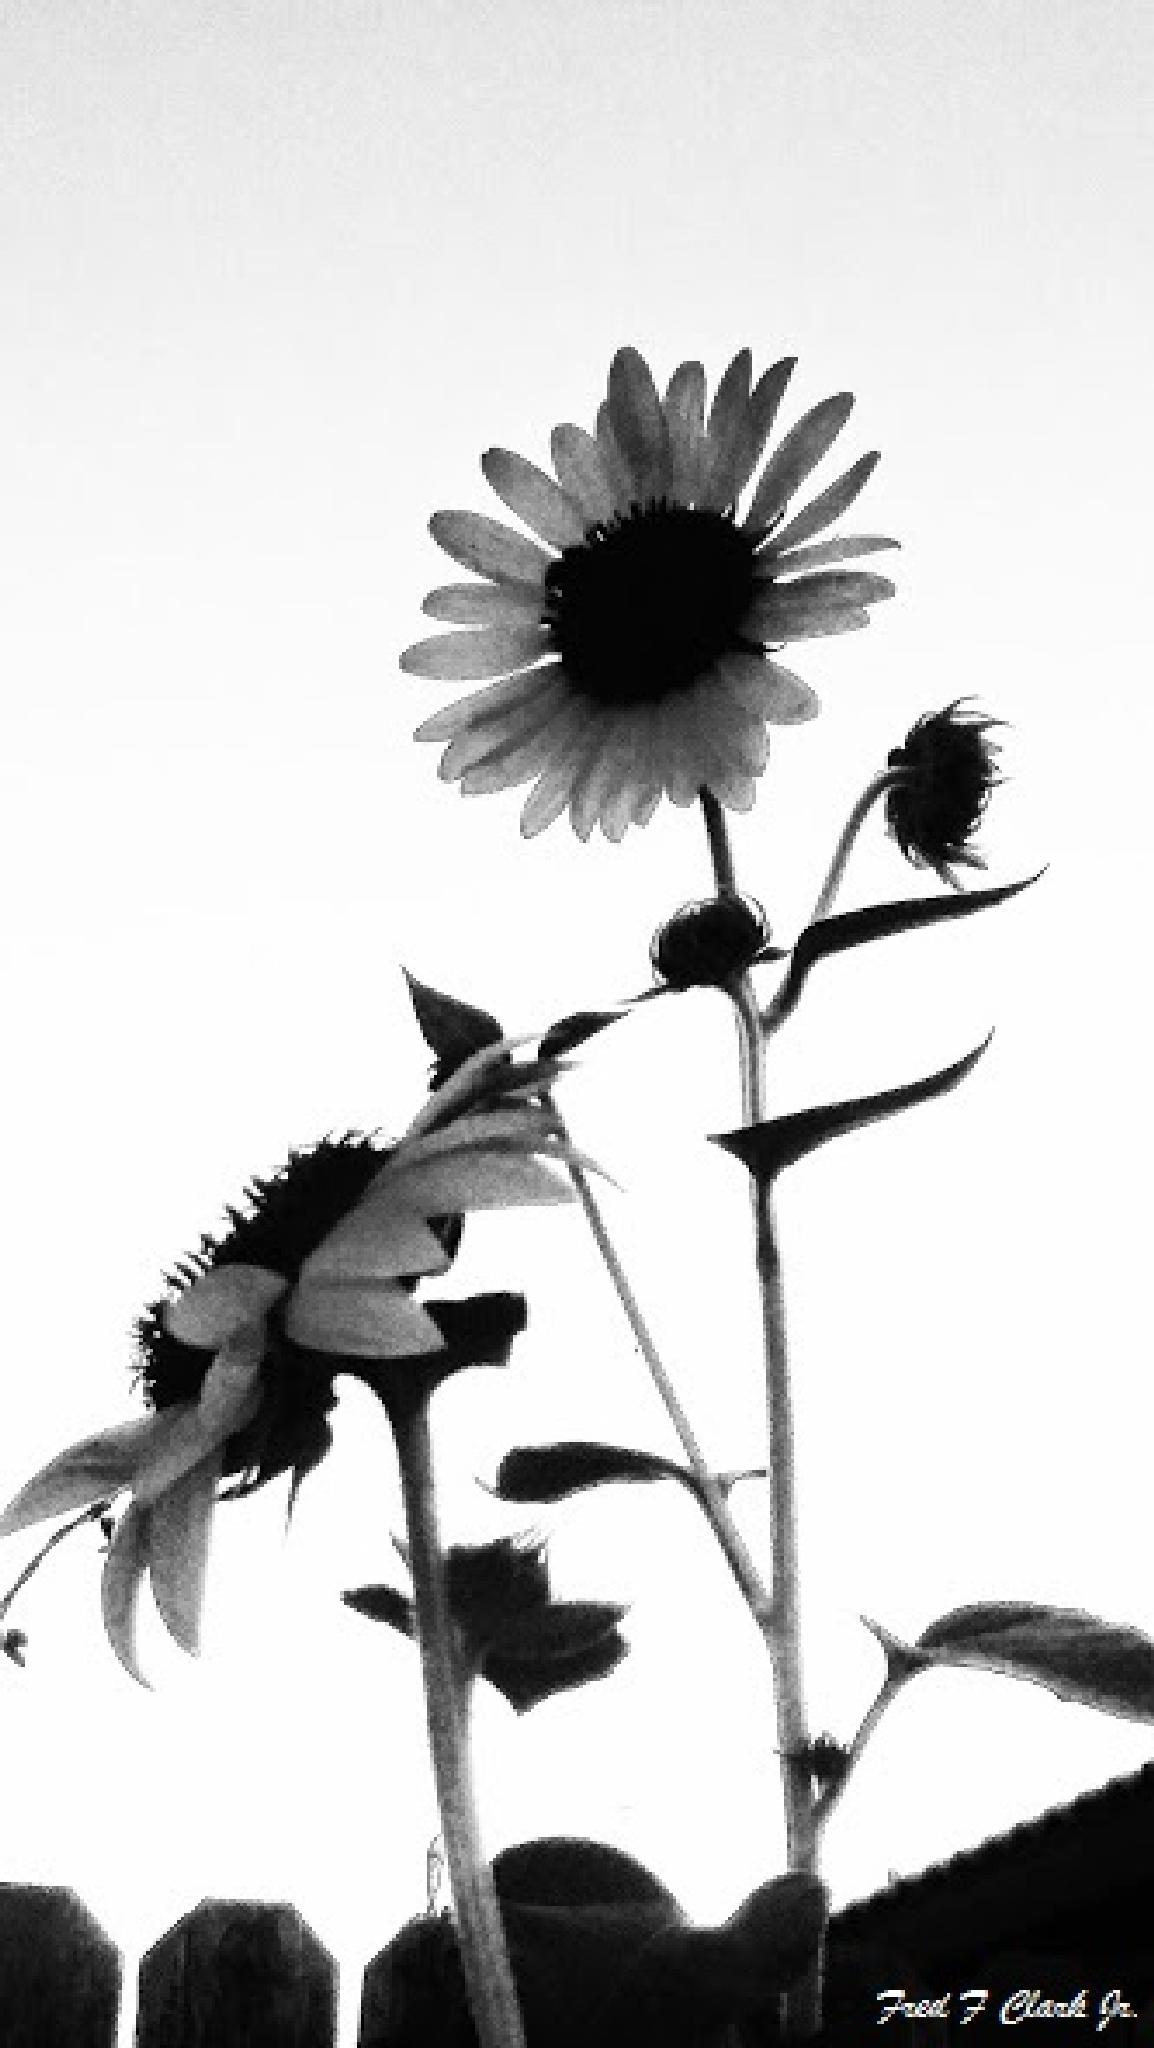 Dark Sunflowers (monochrome) by fred.clark.359